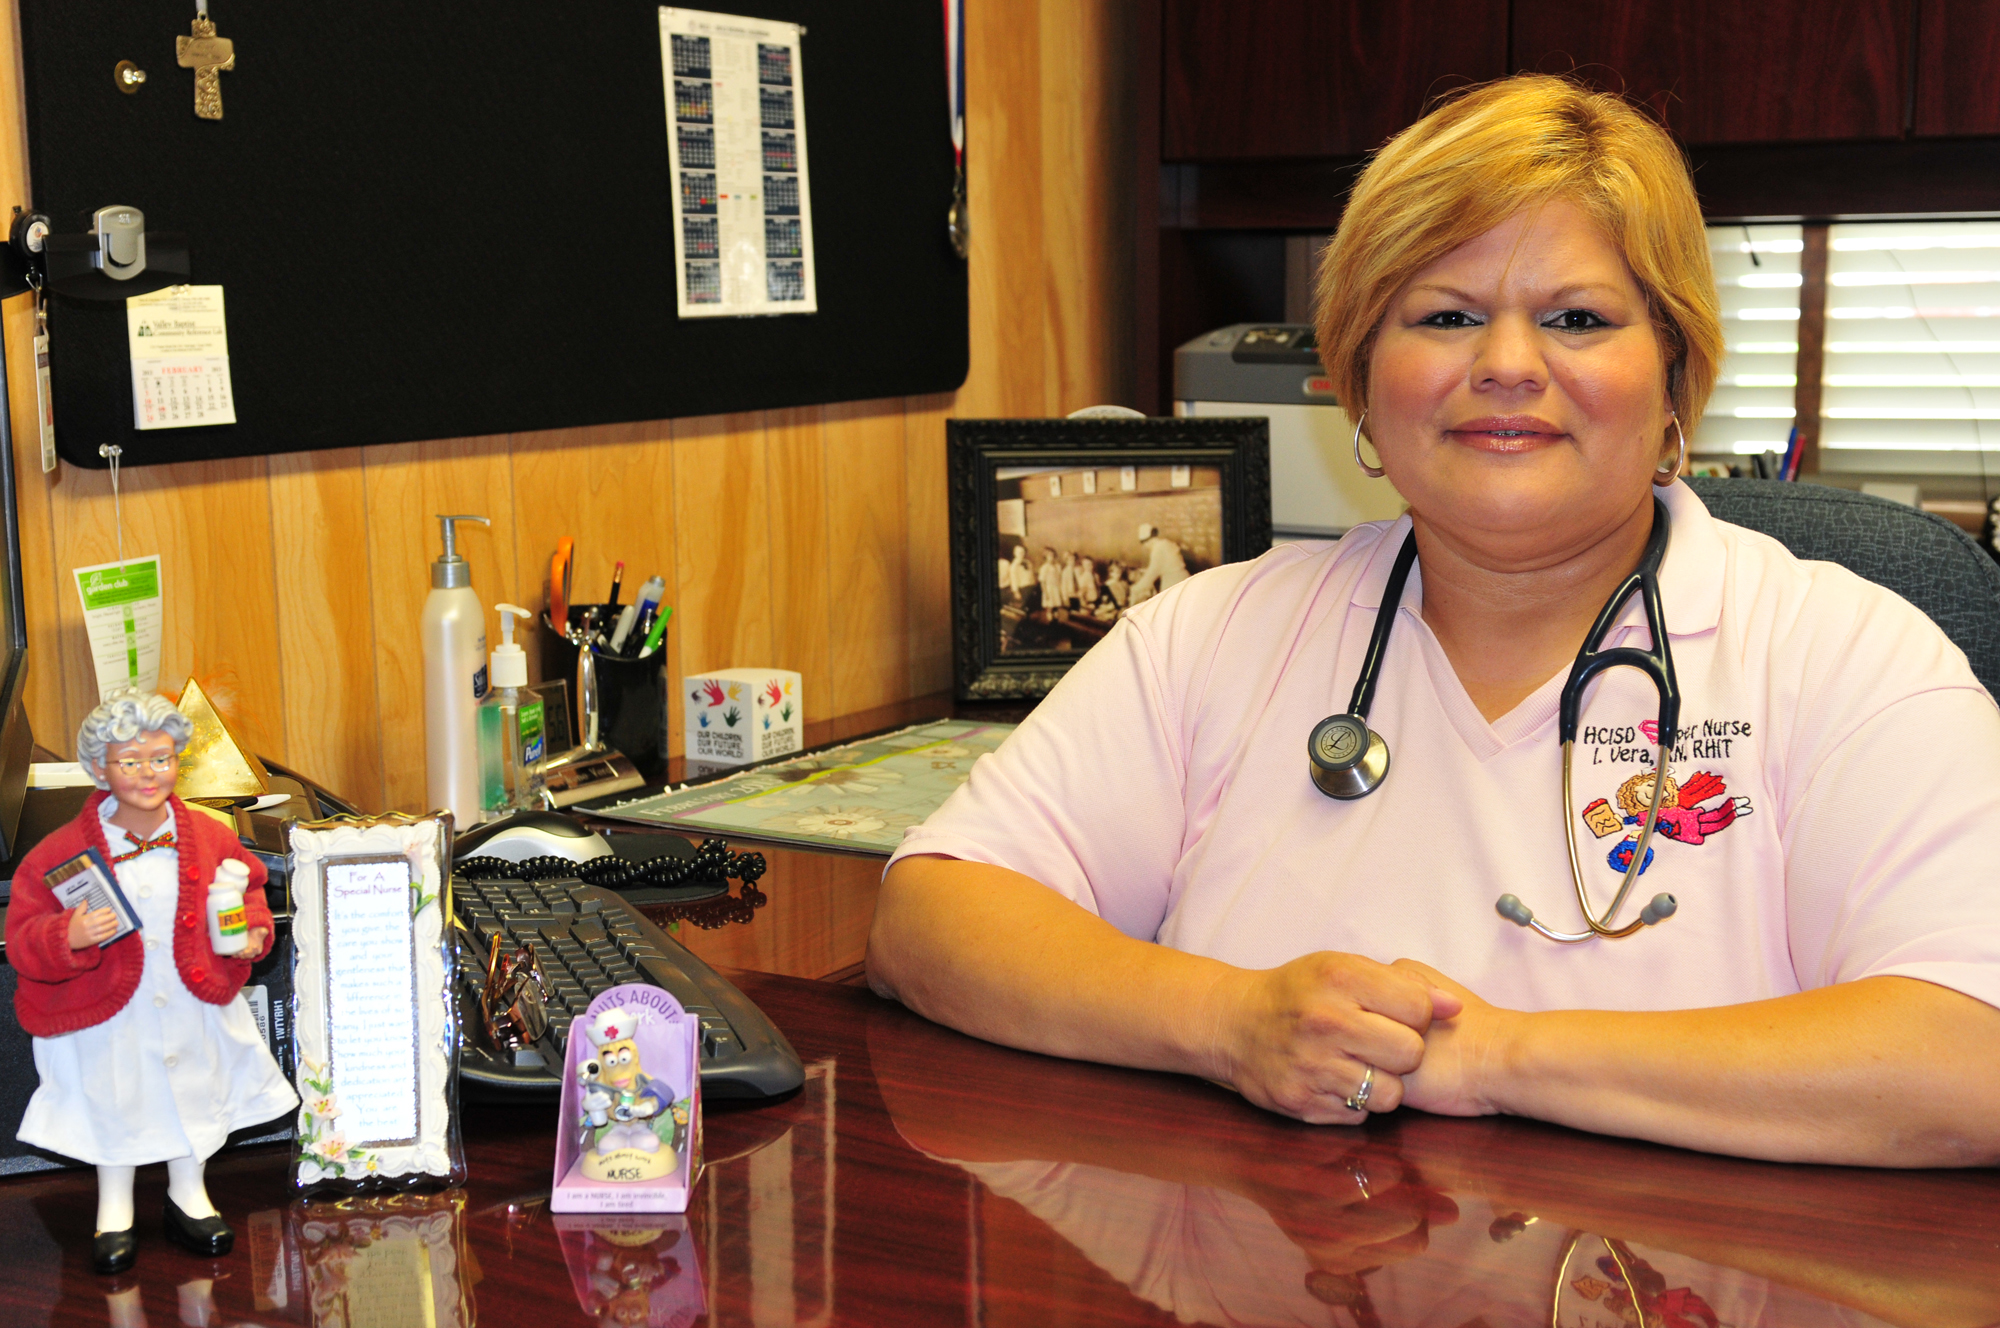 Person of the Week: Vera keeps health a priority at HCISD